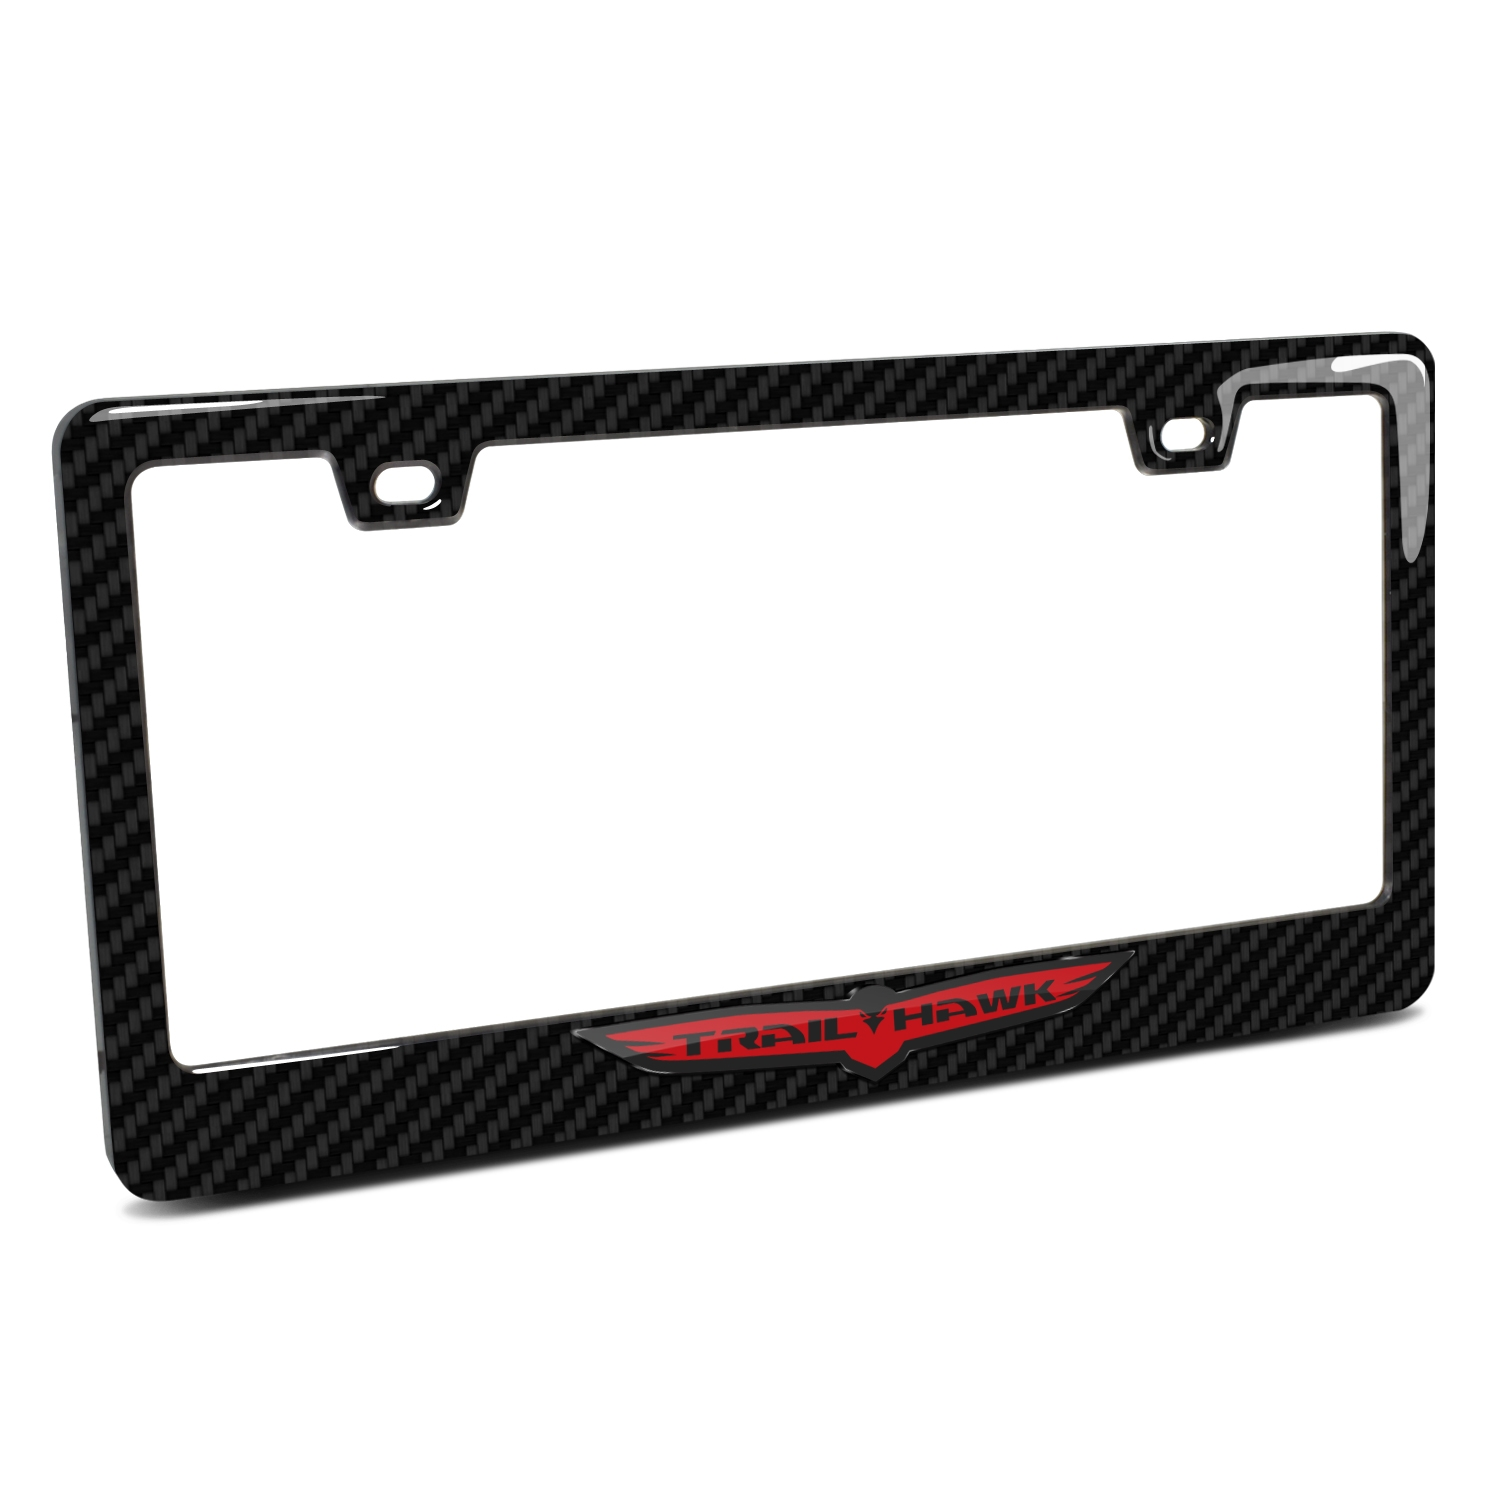 Jeep Trailhawk in 3D Black on Black Real 3K Carbon Fiber Finish ABS Plastic License Plate Frame